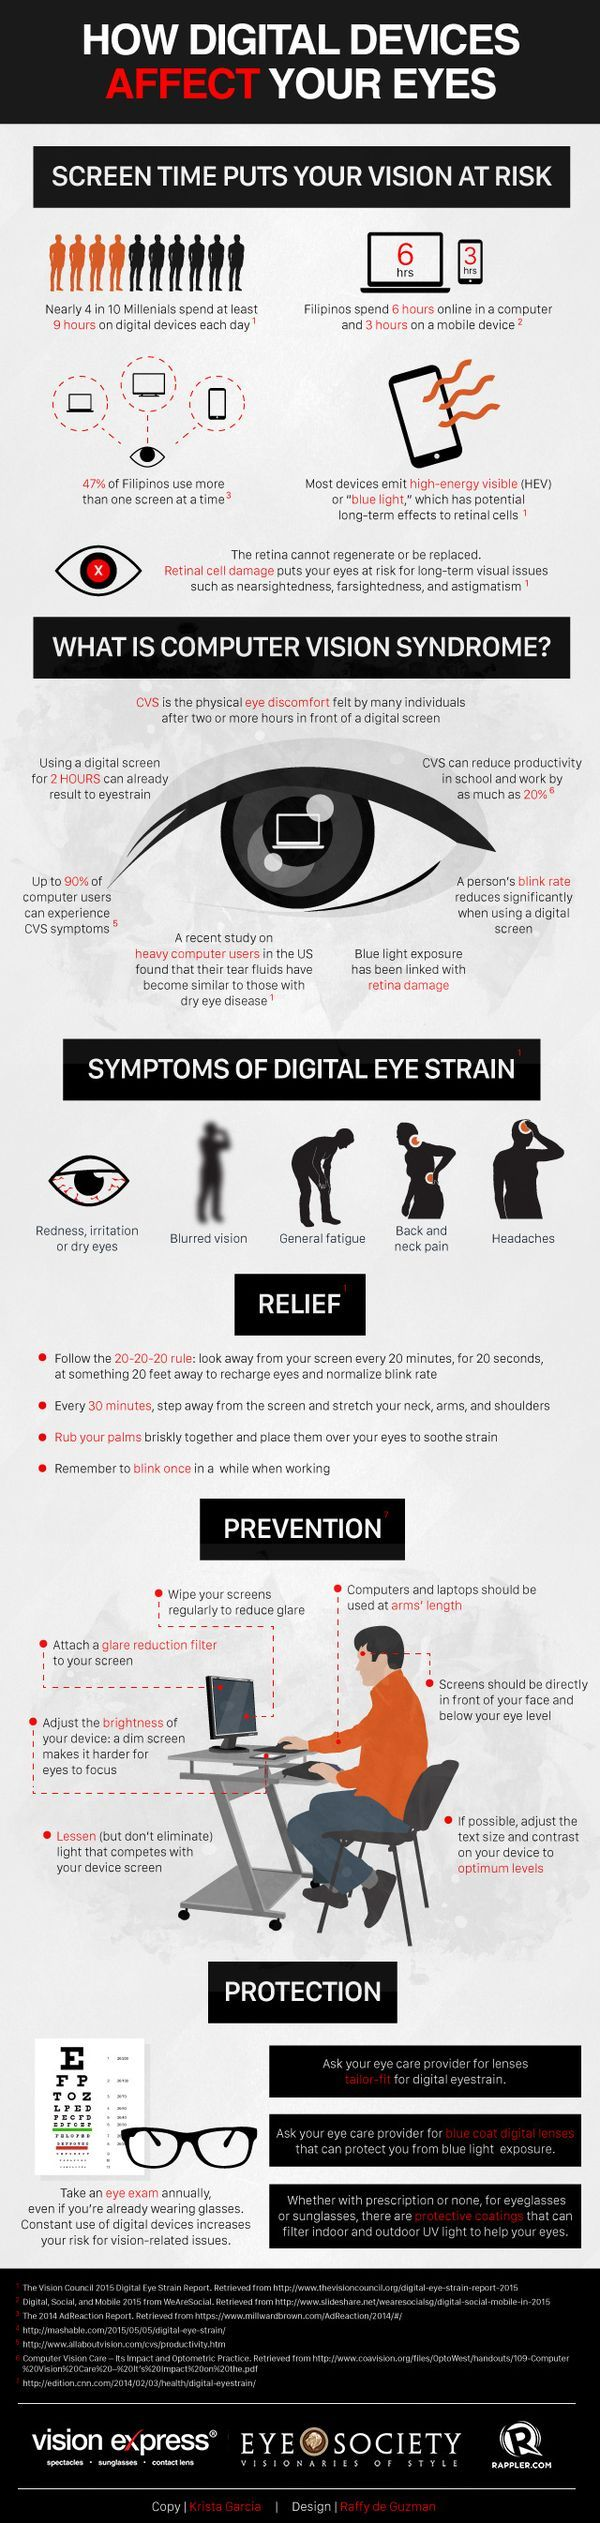 Computer Vision Syndrome Q & A | Good Eye and Vision Care Tips